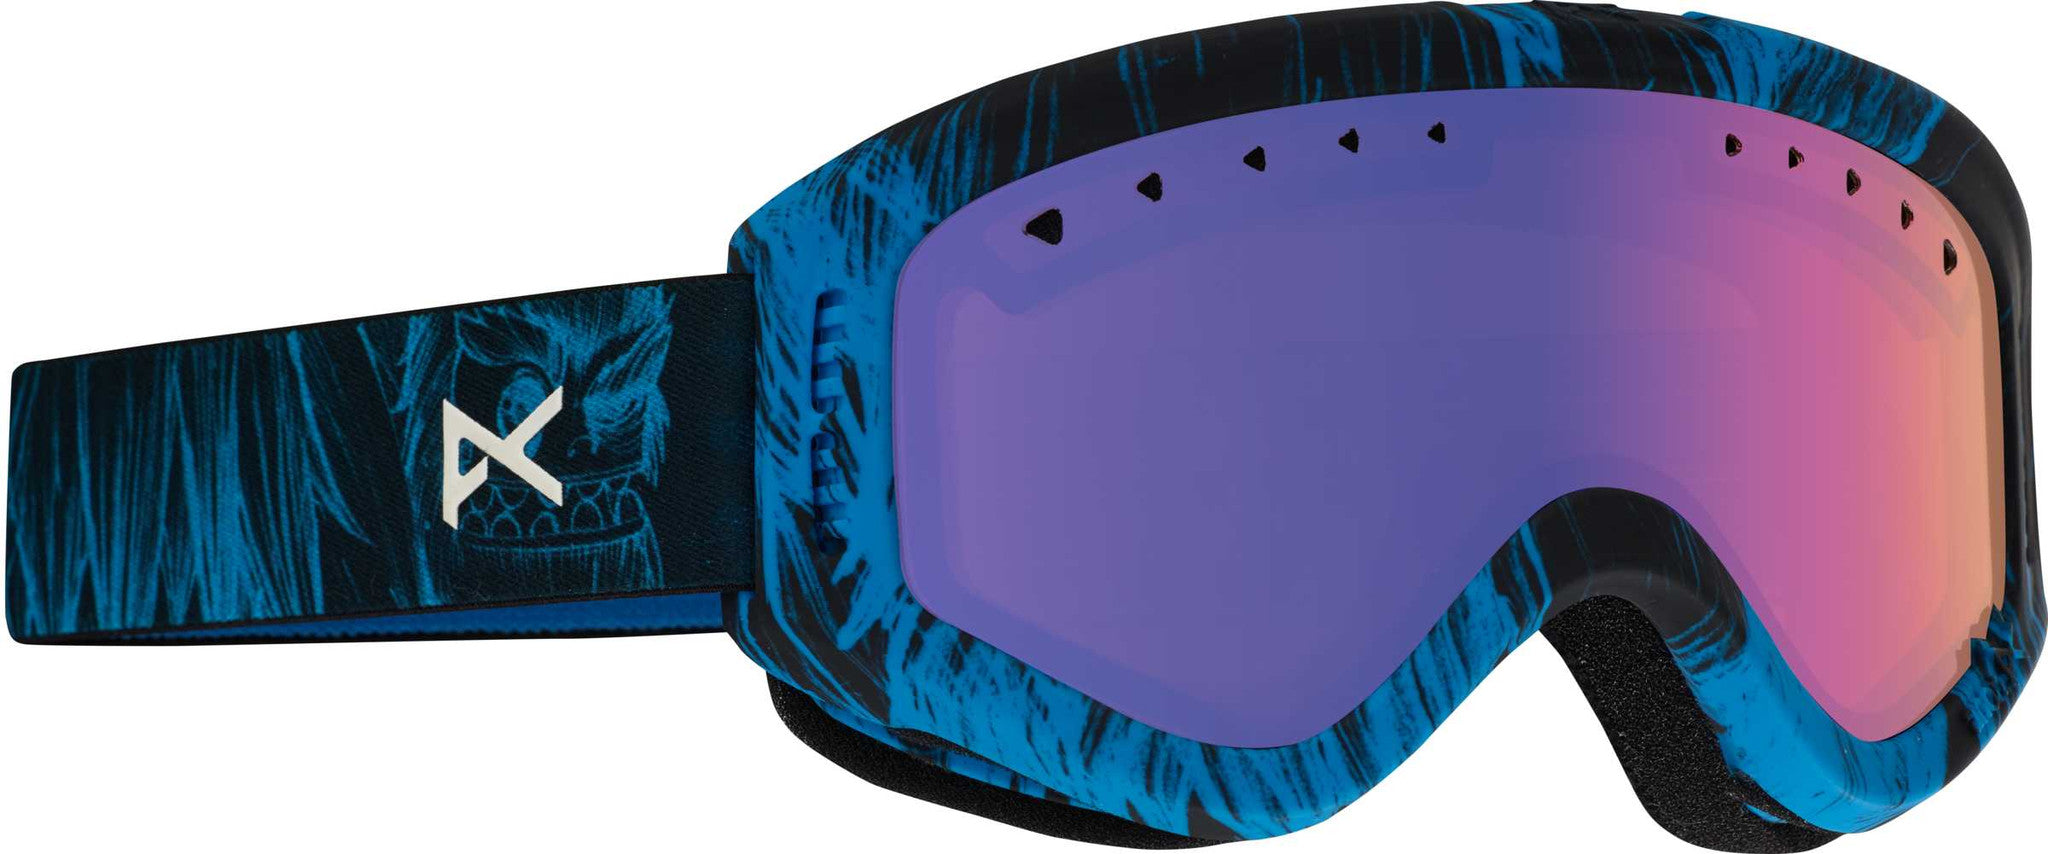 Anon Tracker Youth Snow Goggle - Sulley/Blue Amber Lens